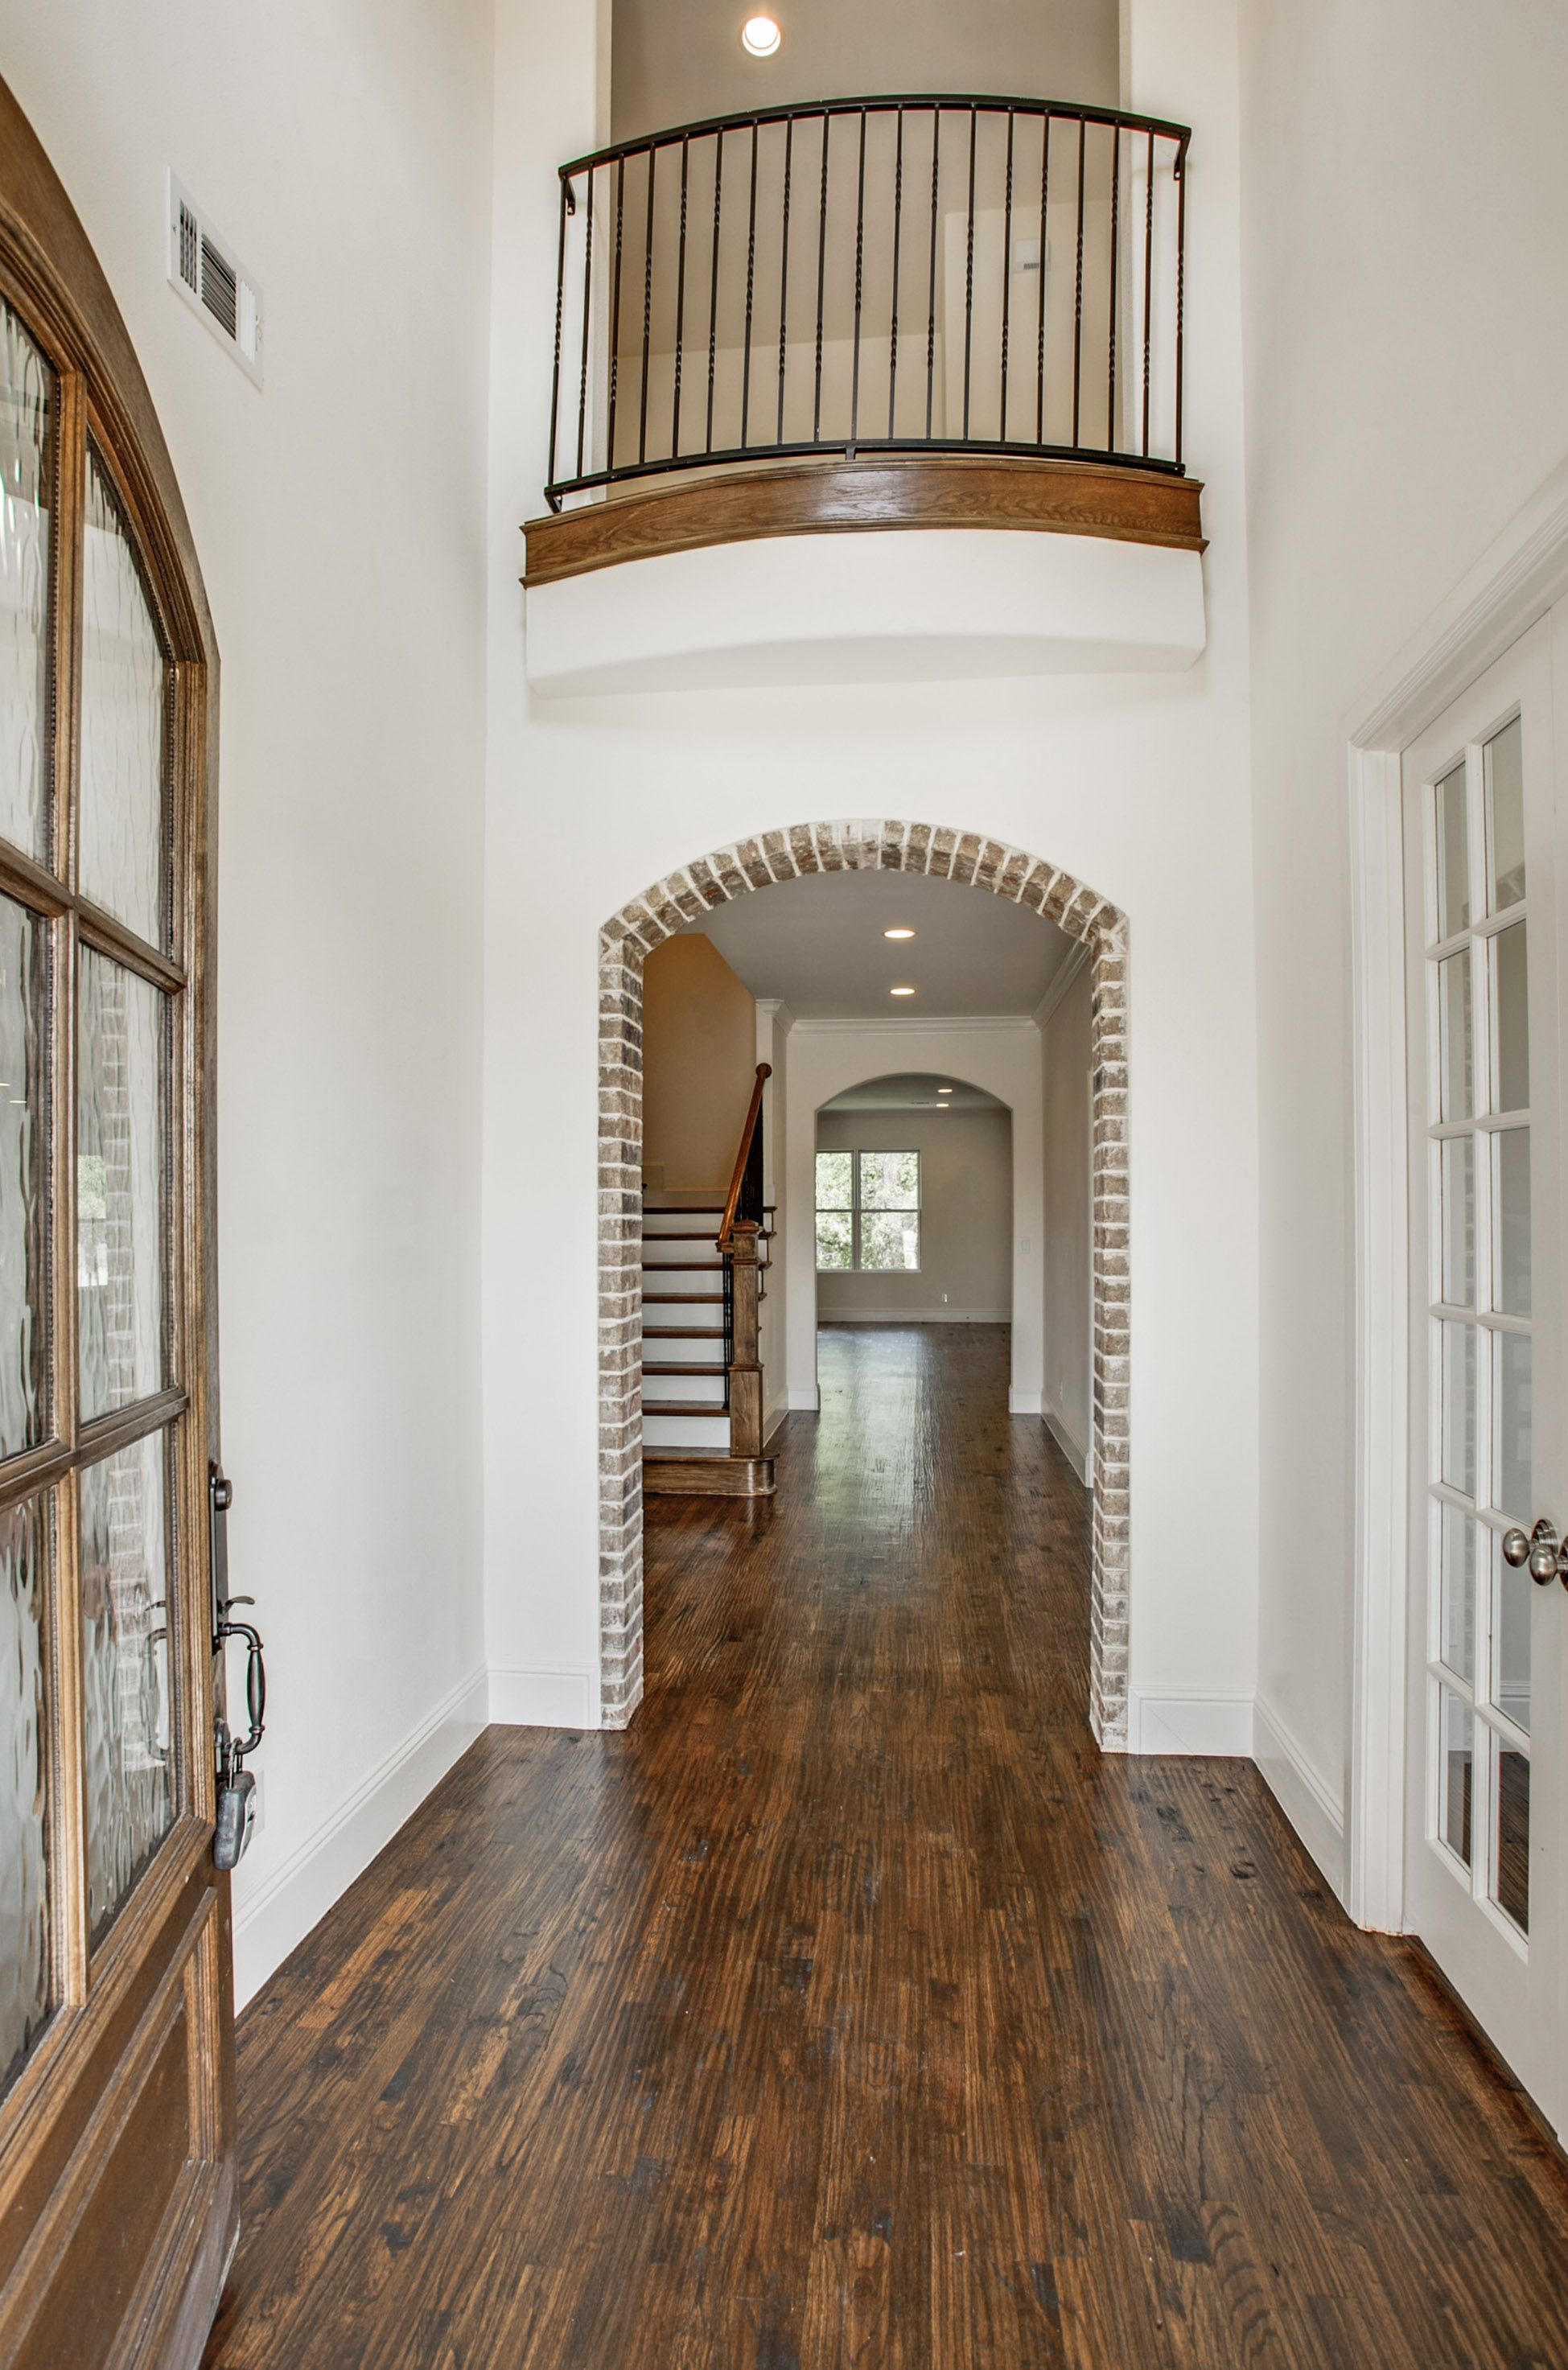 French-Style La Cantera Home. Exposed Brick Arch. Entry Archway. Two Story